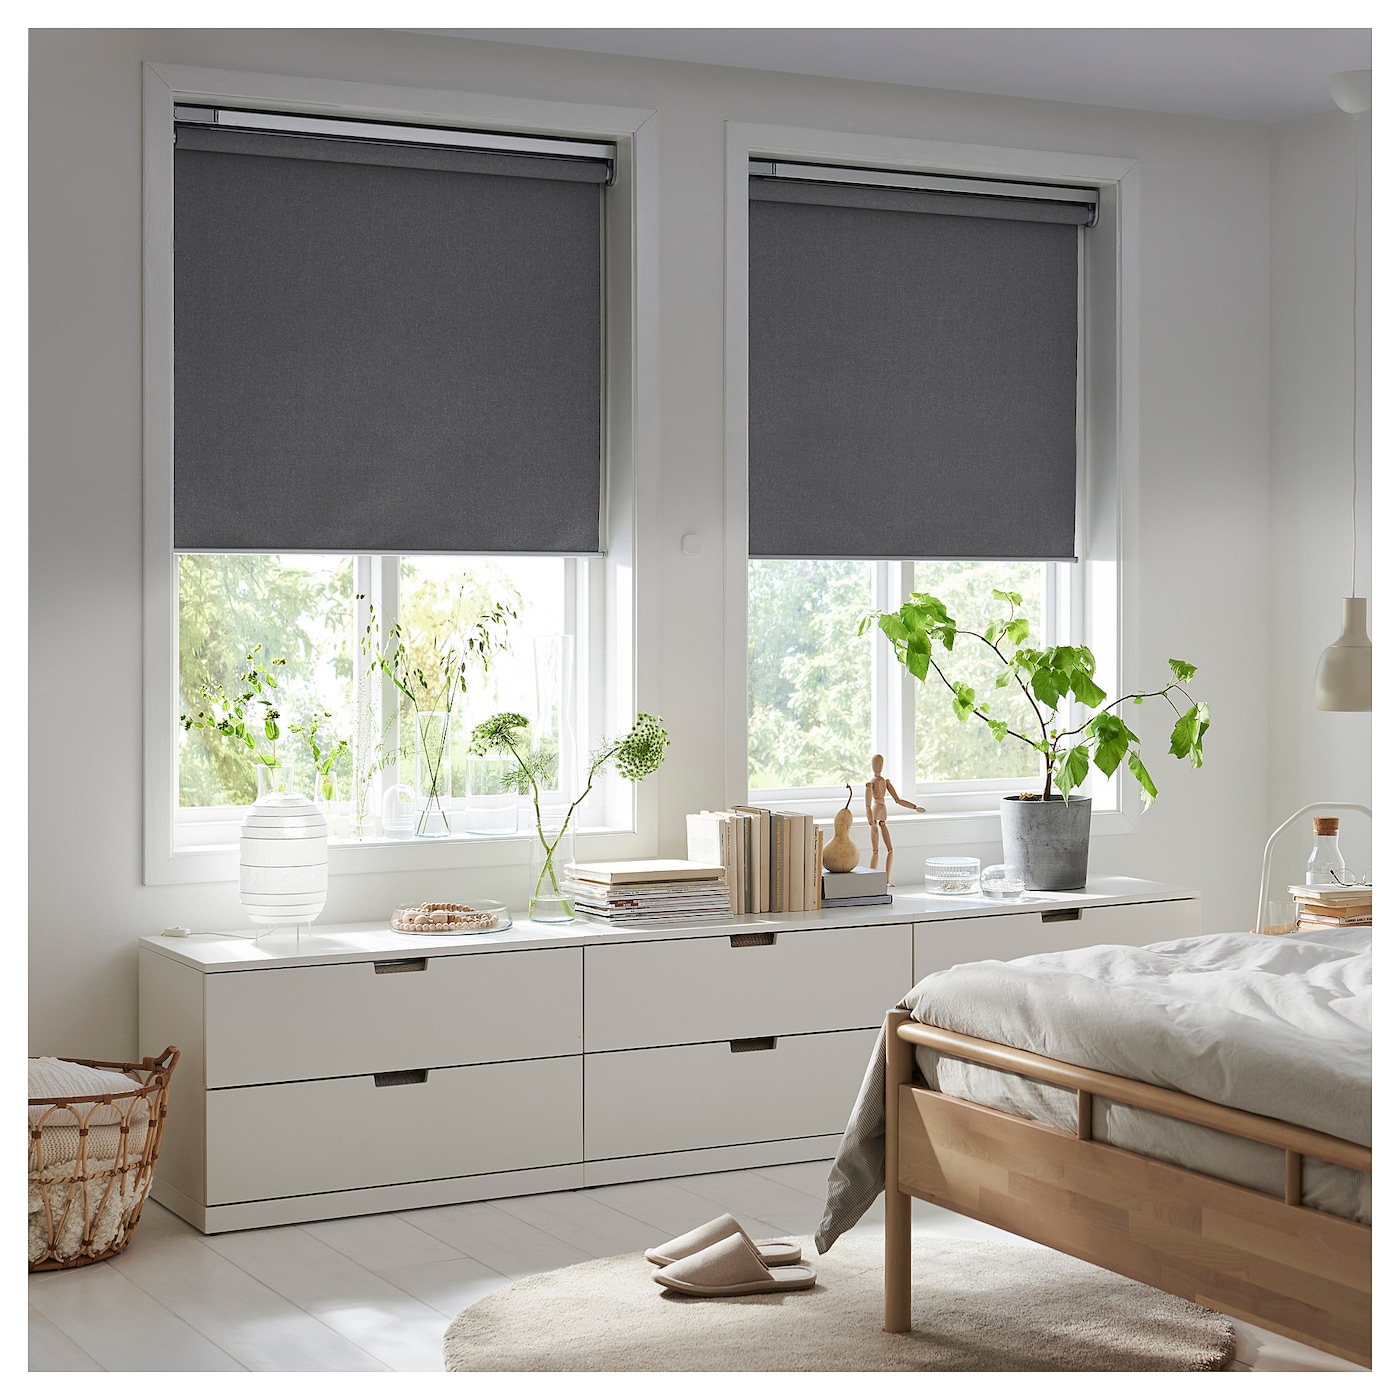 FYRTUR Blackout roller blind - wireless/battery operated gray 4x4 ¾ ""